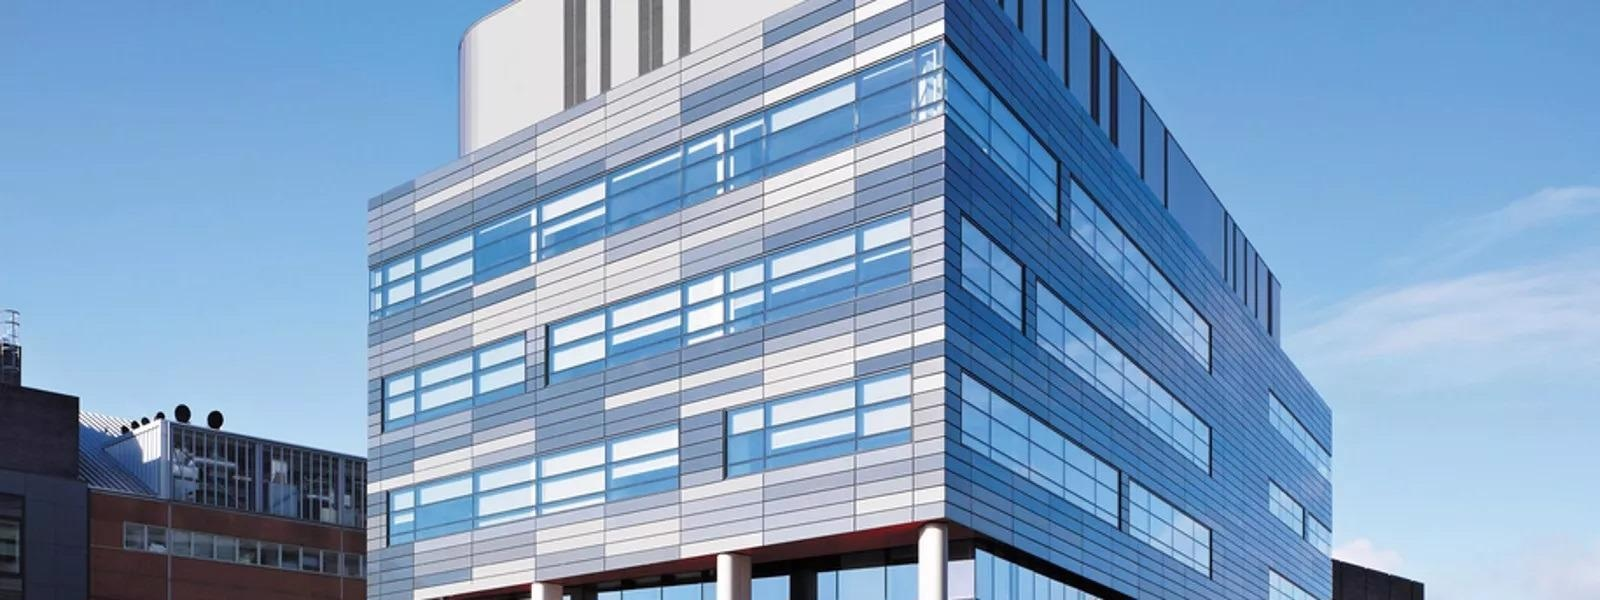 New UK-Wide Facility Commissioned to Promote Research in Health Nanotechnologies